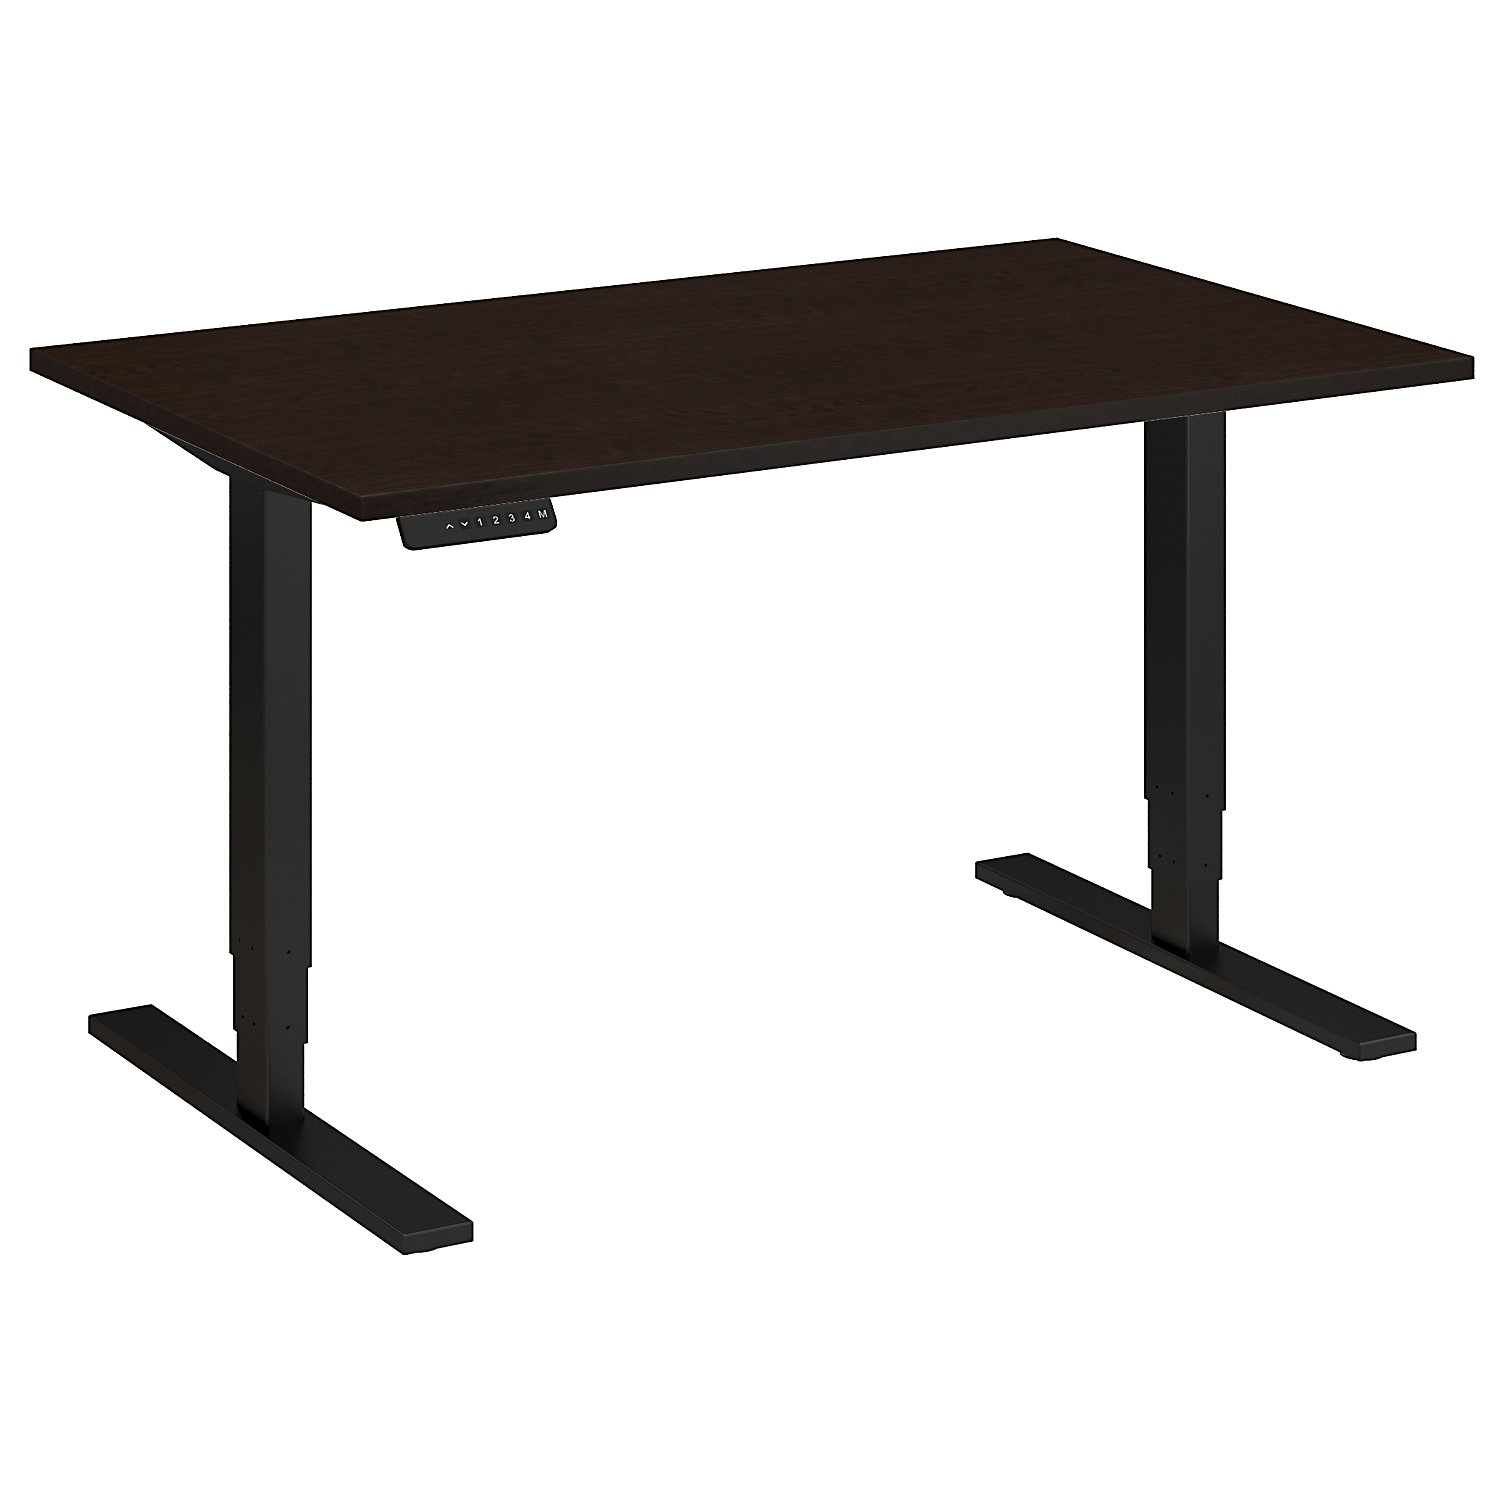 Adjustable Height Desks from BBF - Shown in Mocha Cherry woodgrain laminate top and black base